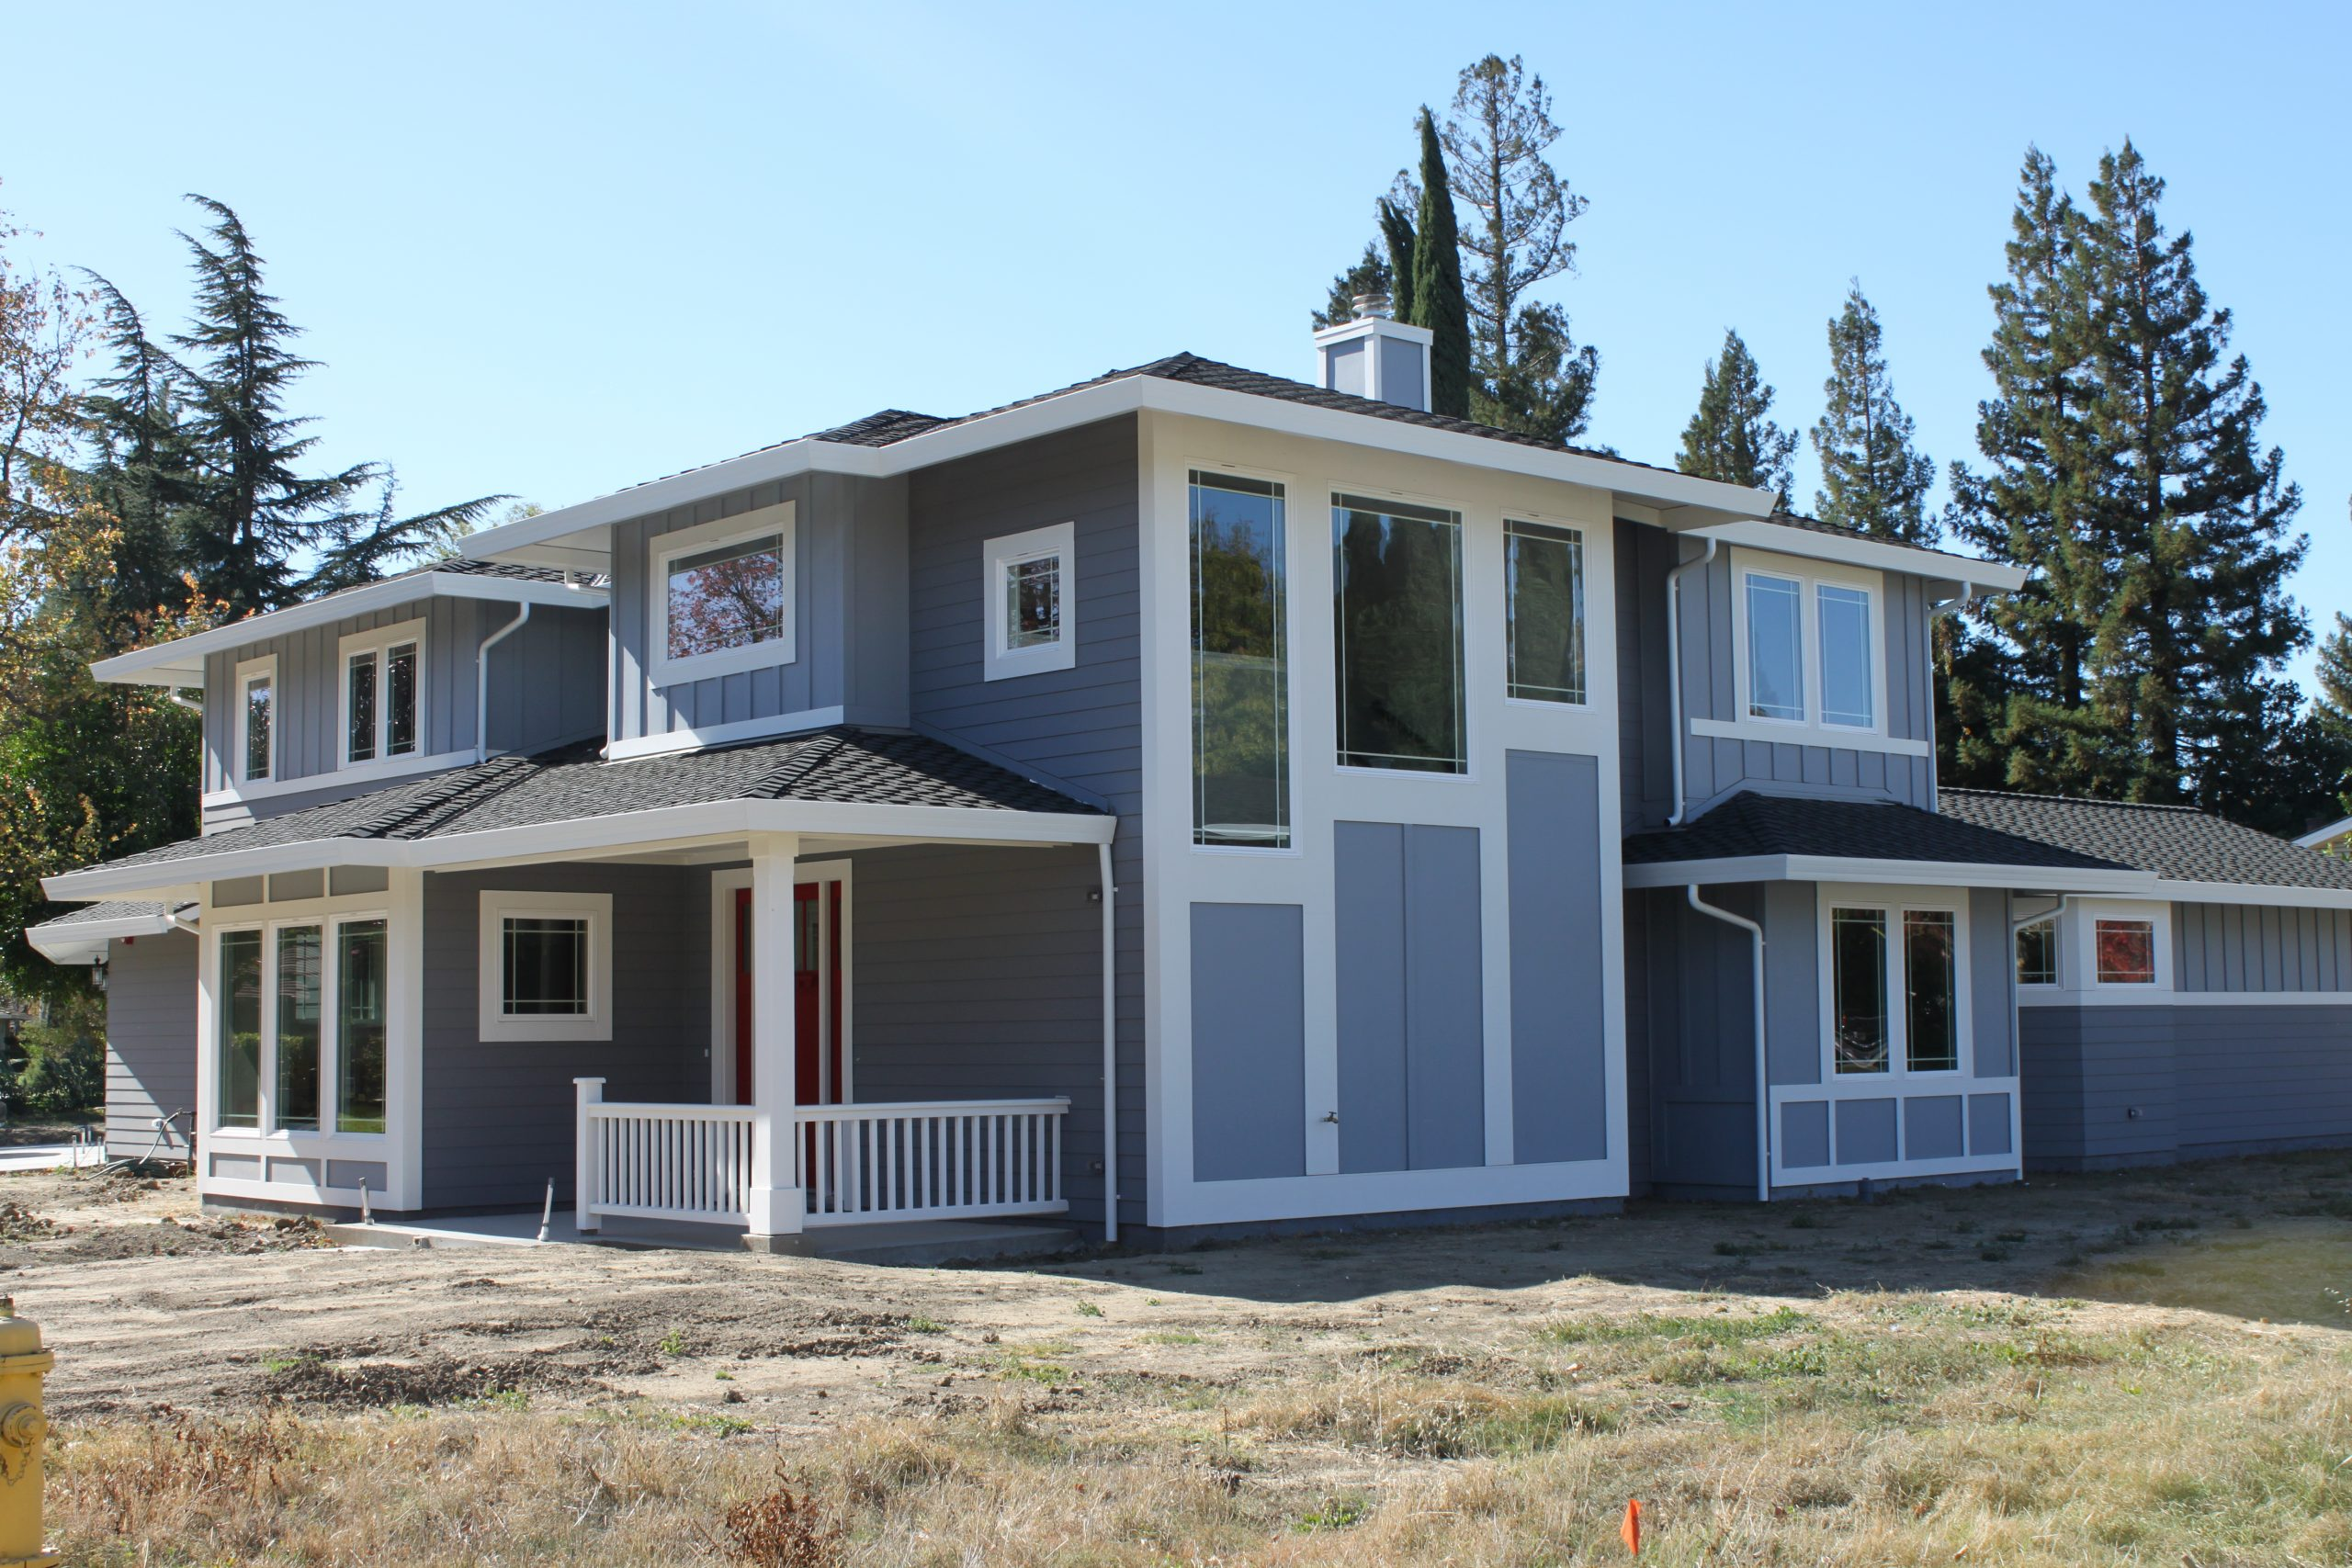 Custom Residential Home, El Macero, CA